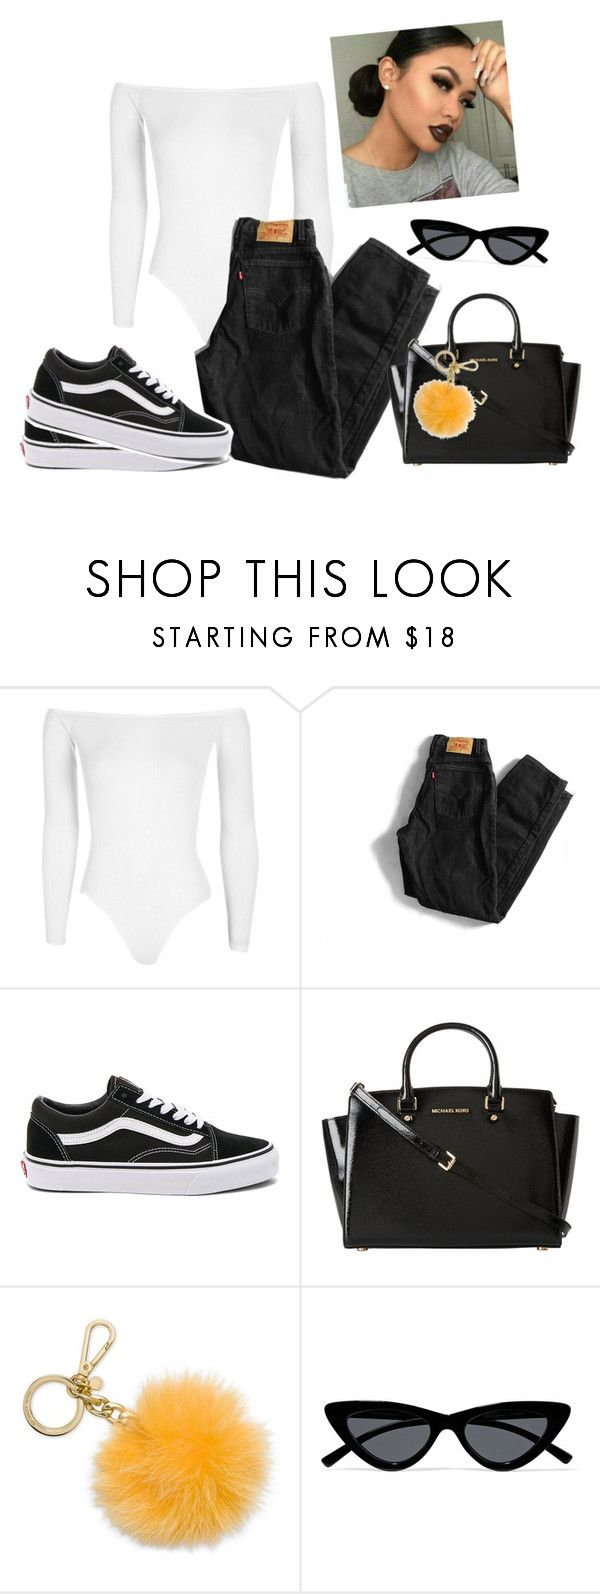 """""""I start fashion trends..."""" by aerielle24 ❤ liked on Polyvore featuring Boohoo, Levi's, Vans, MICHAEL Michael Kors, Michael Kors and Le Specs"""